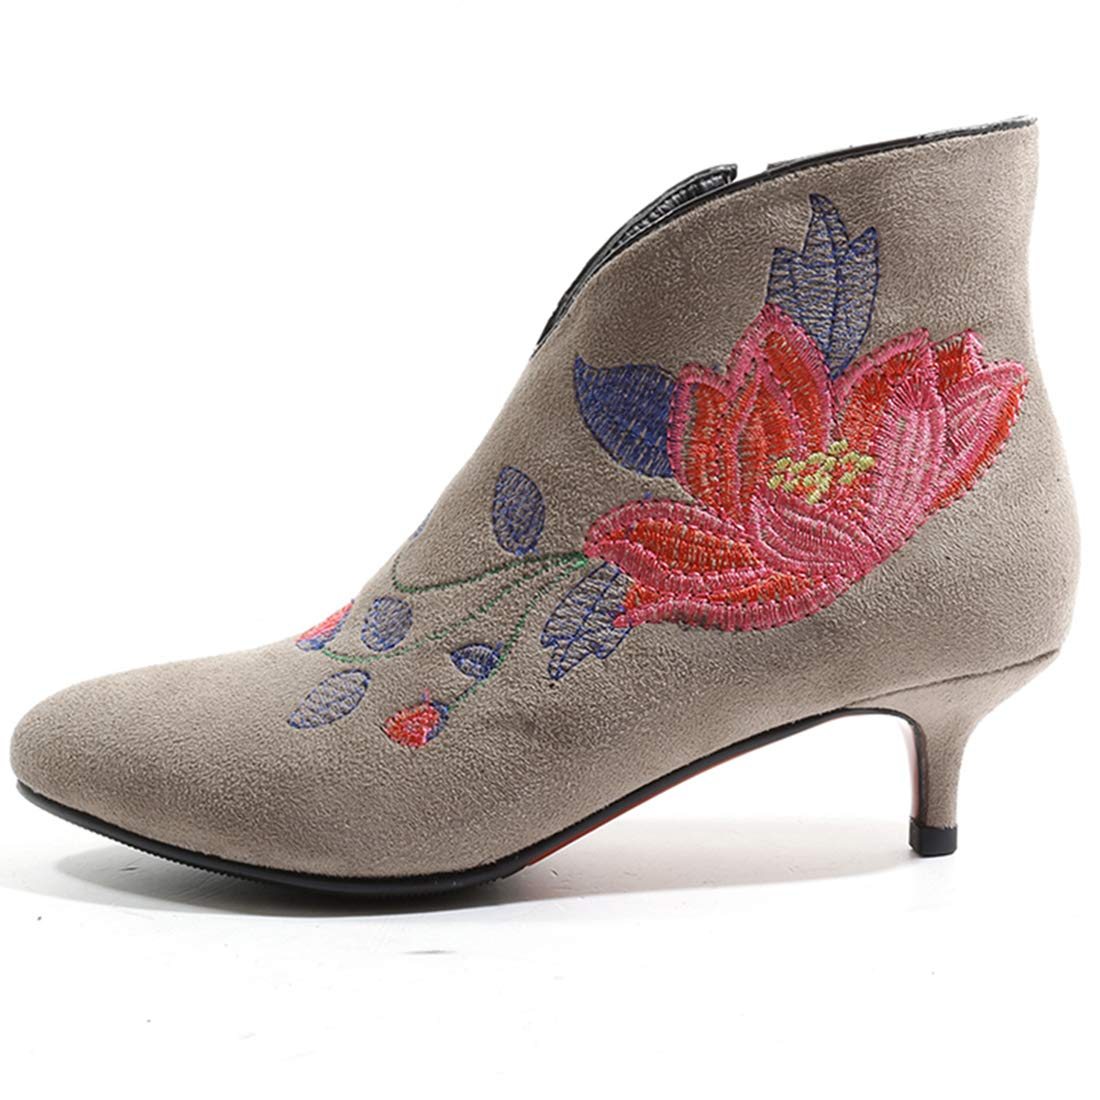 20fb47de48dd Artfaerie Womens Kitten Heel Embroidery Ankle Boots Floral Print Booties  with Zip Pointed Toe Elegant Shoes  Amazon.ca  Shoes   Handbags